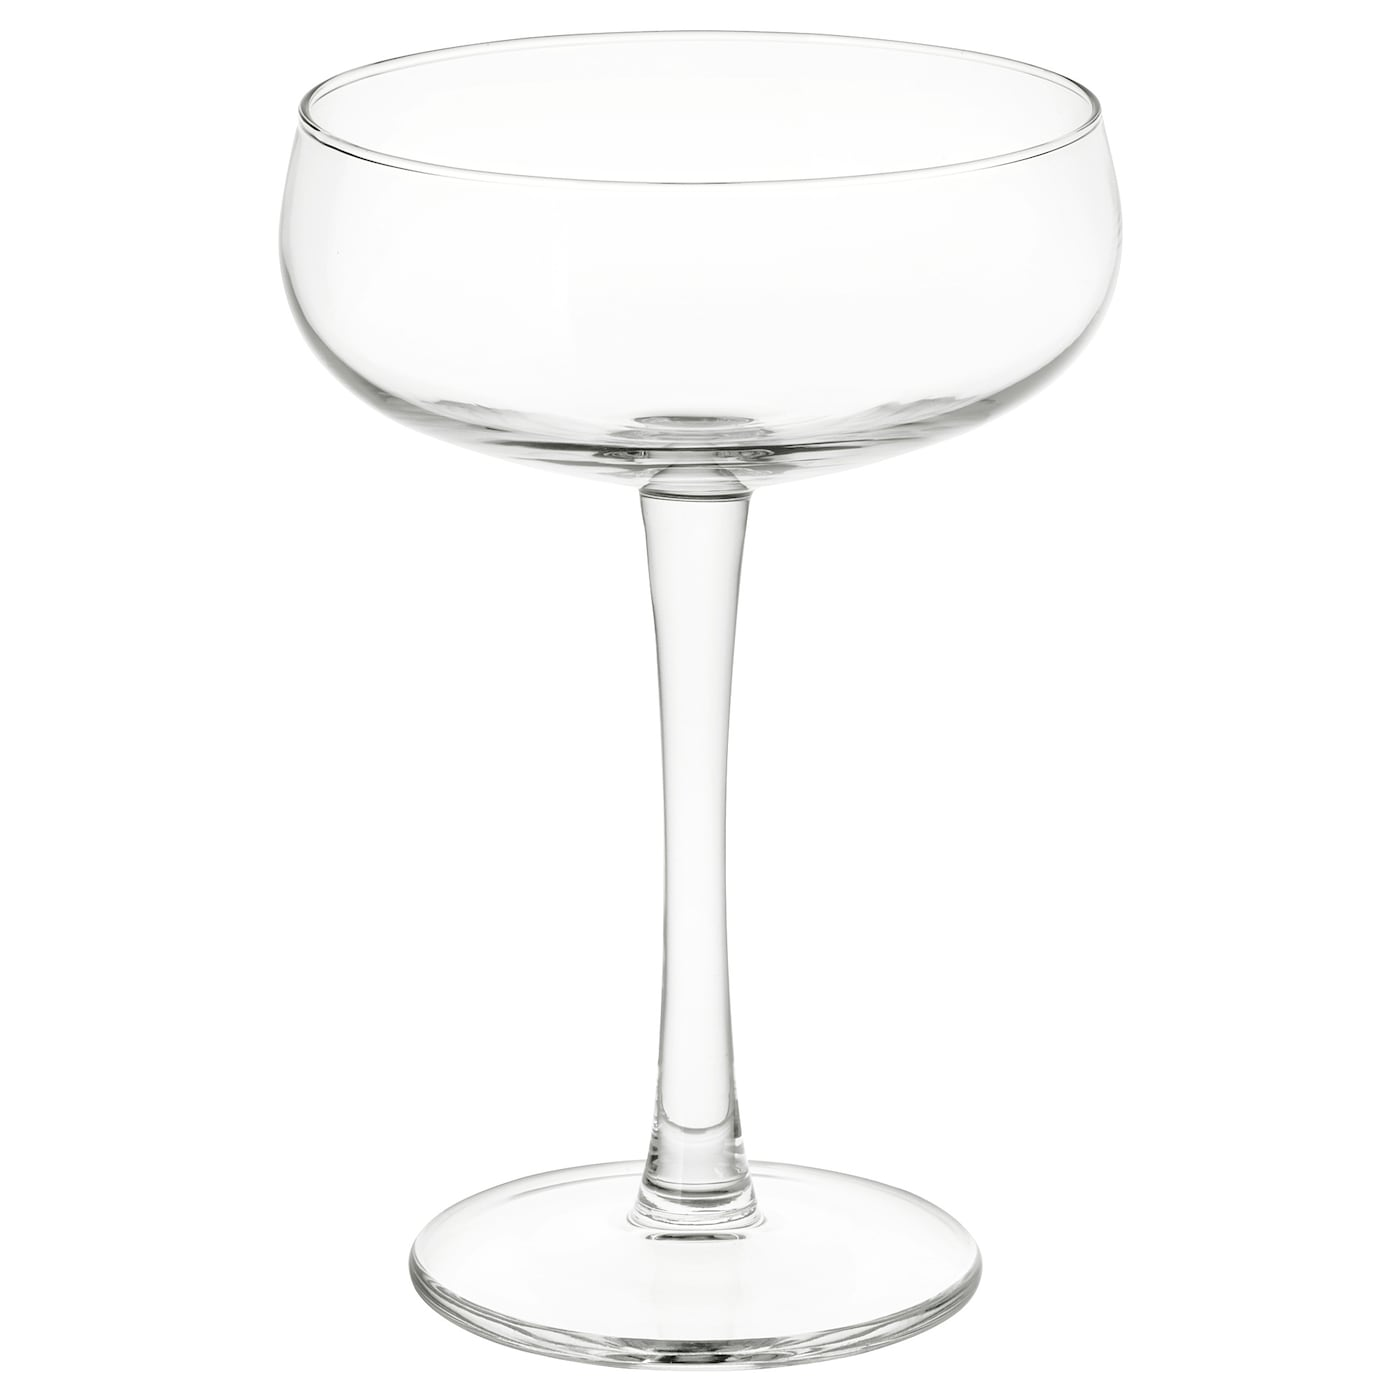 Storhet Champagne Coupe Clear Glass Ikea